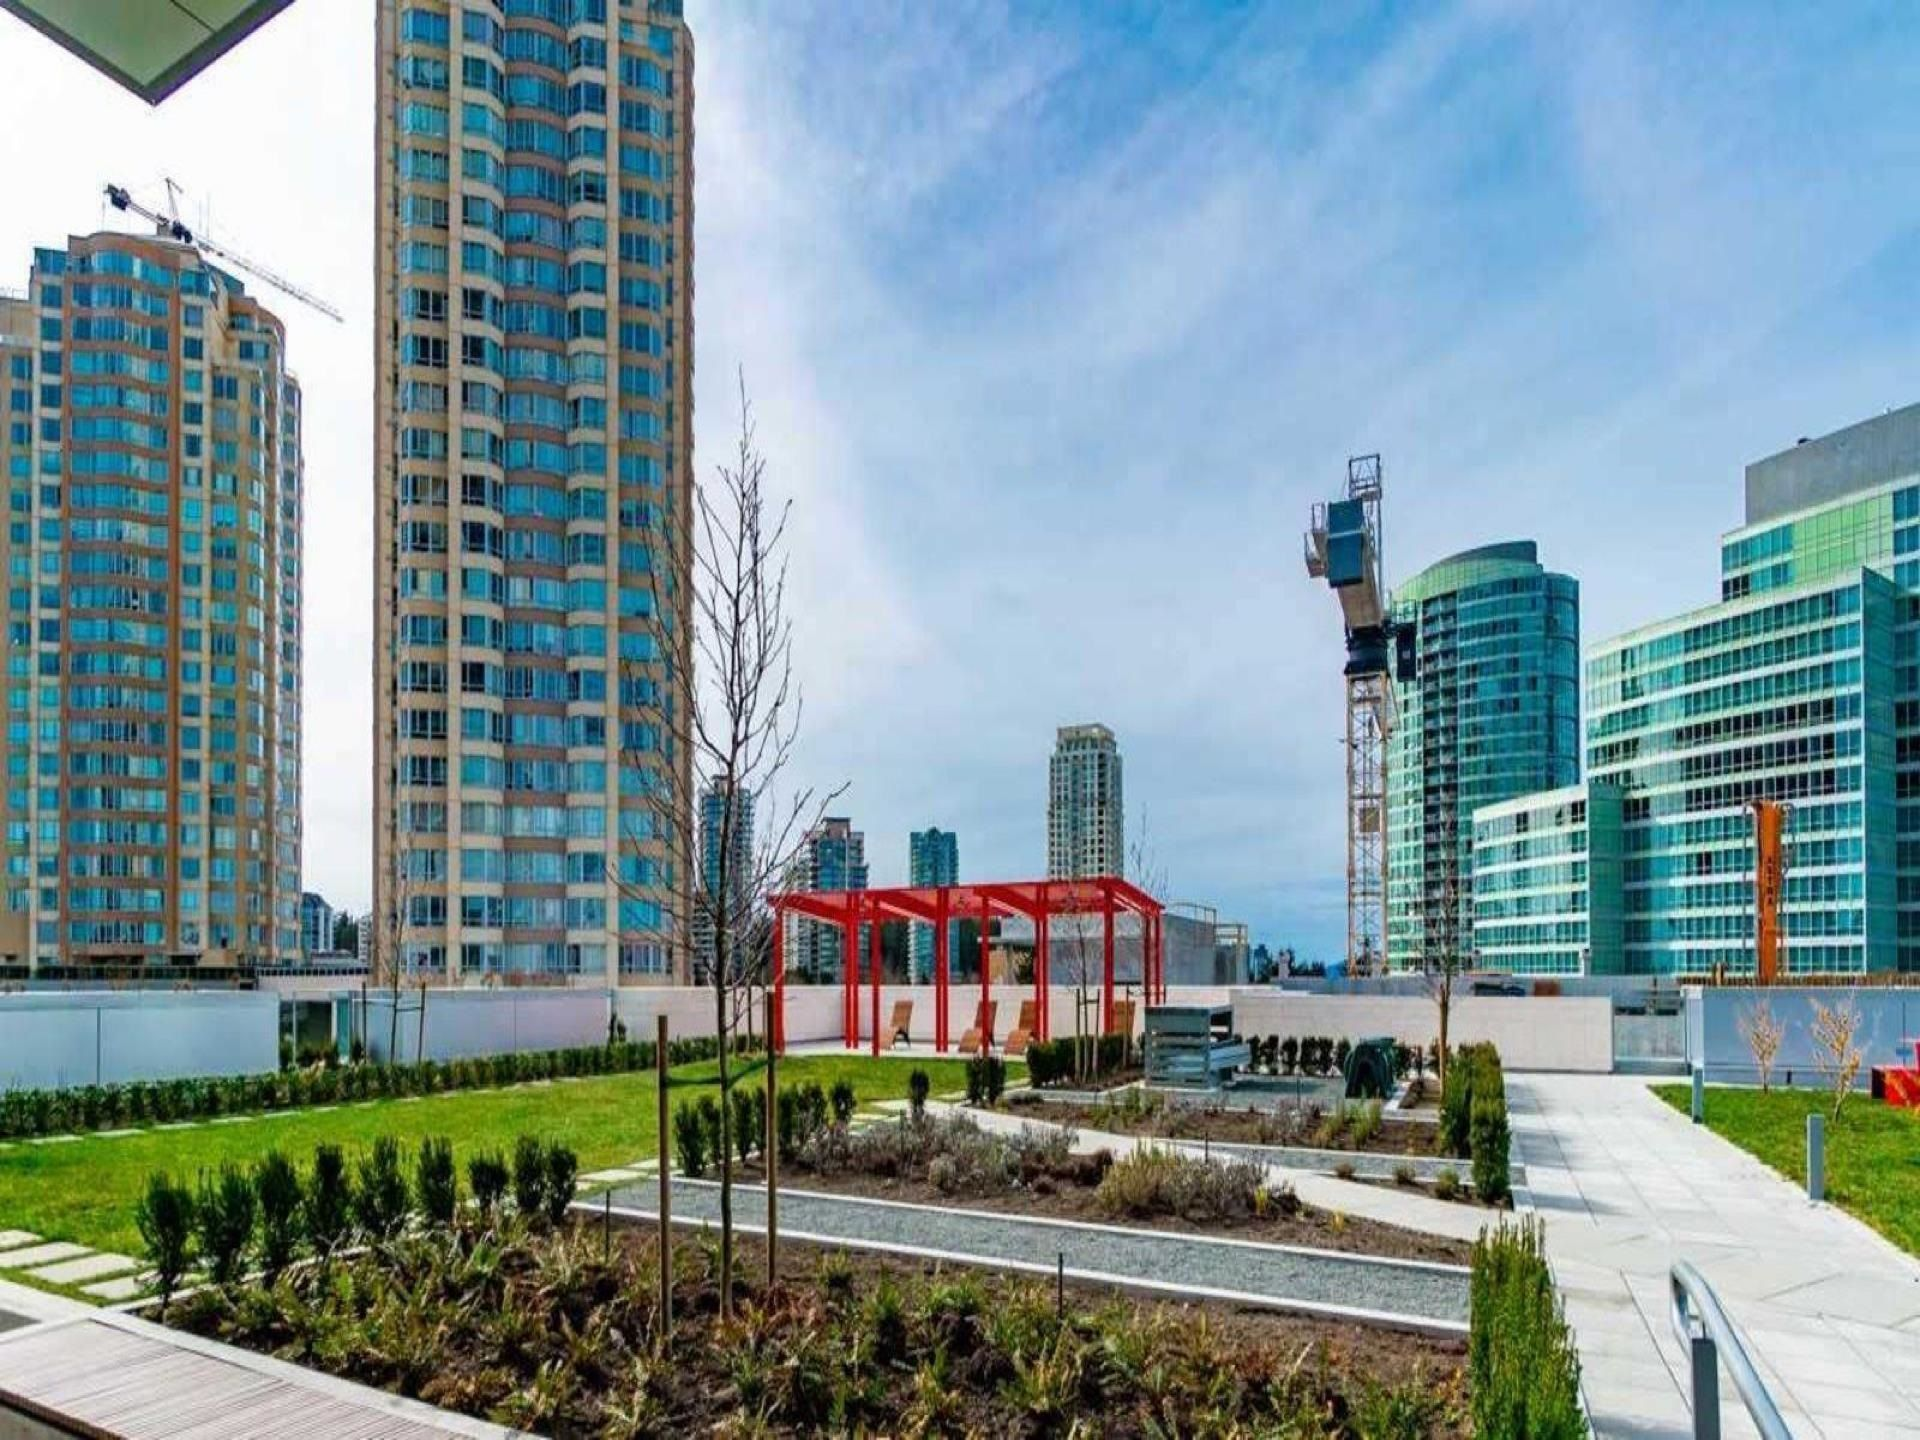 Main Photo: 1003 4670 ASSEMBLY Way in Burnaby: Metrotown Condo for sale (Burnaby South)  : MLS®# R2616663